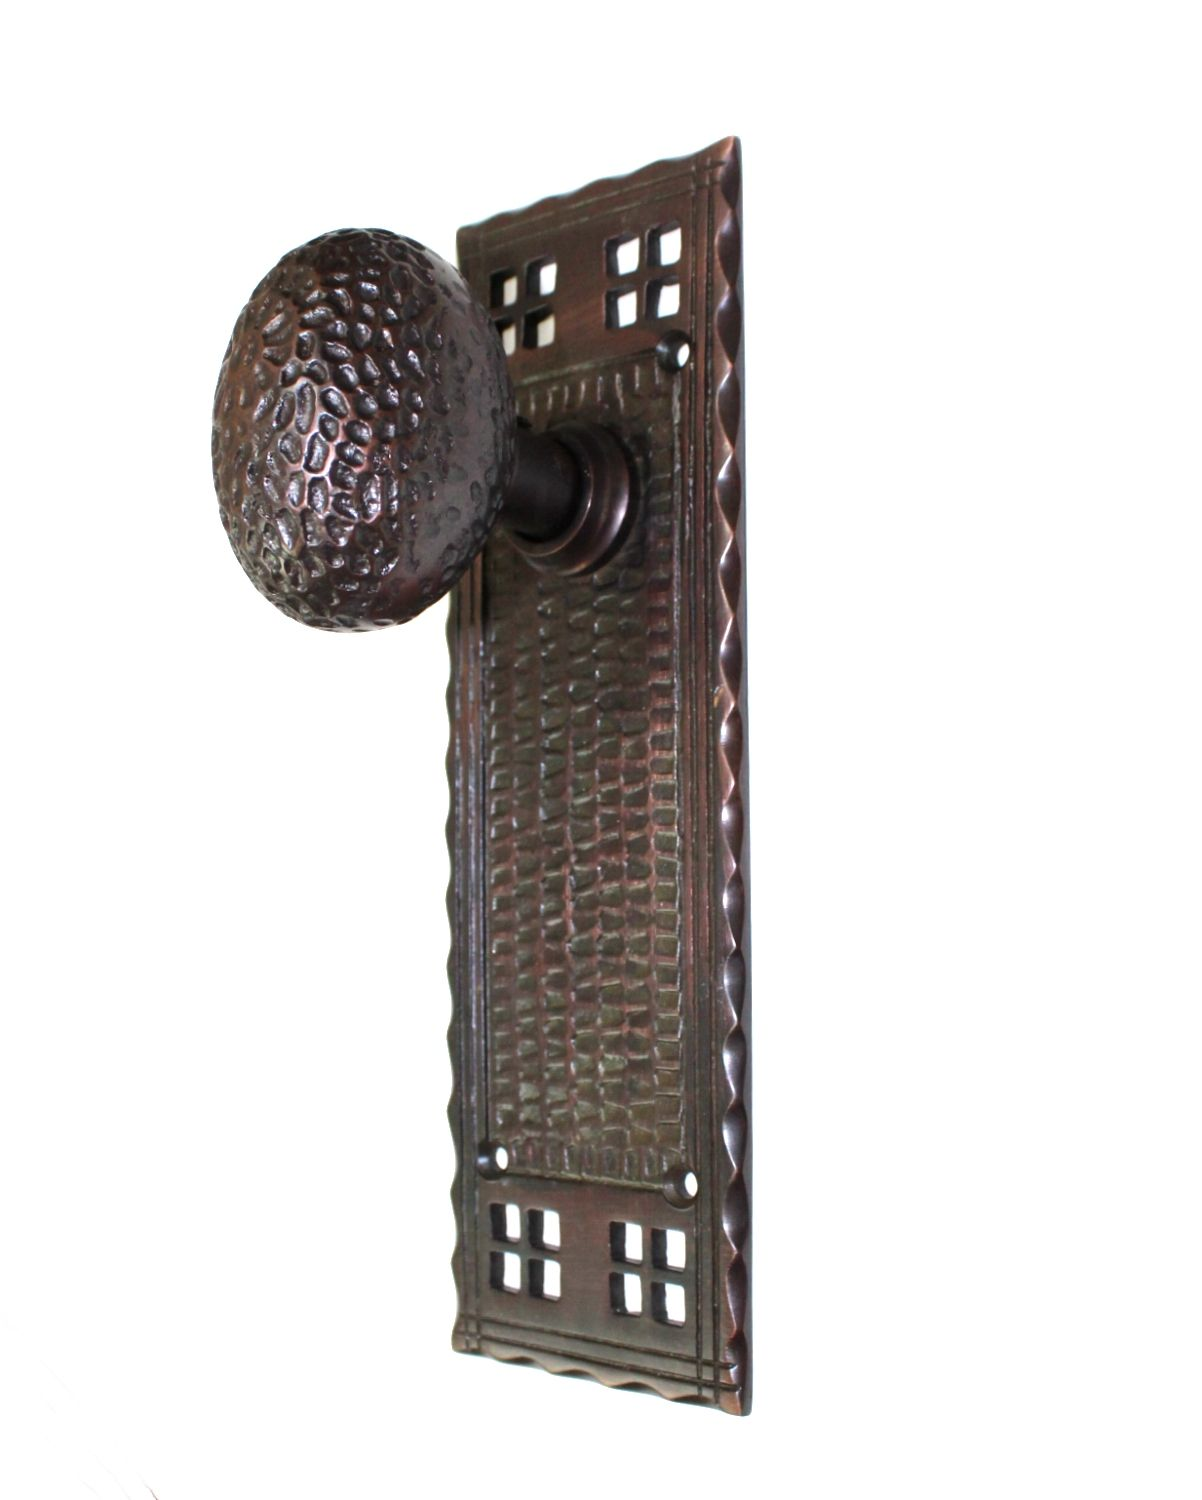 Arts and Crafts Single Push Button Switch Plate Mission or Bungalow Bronze